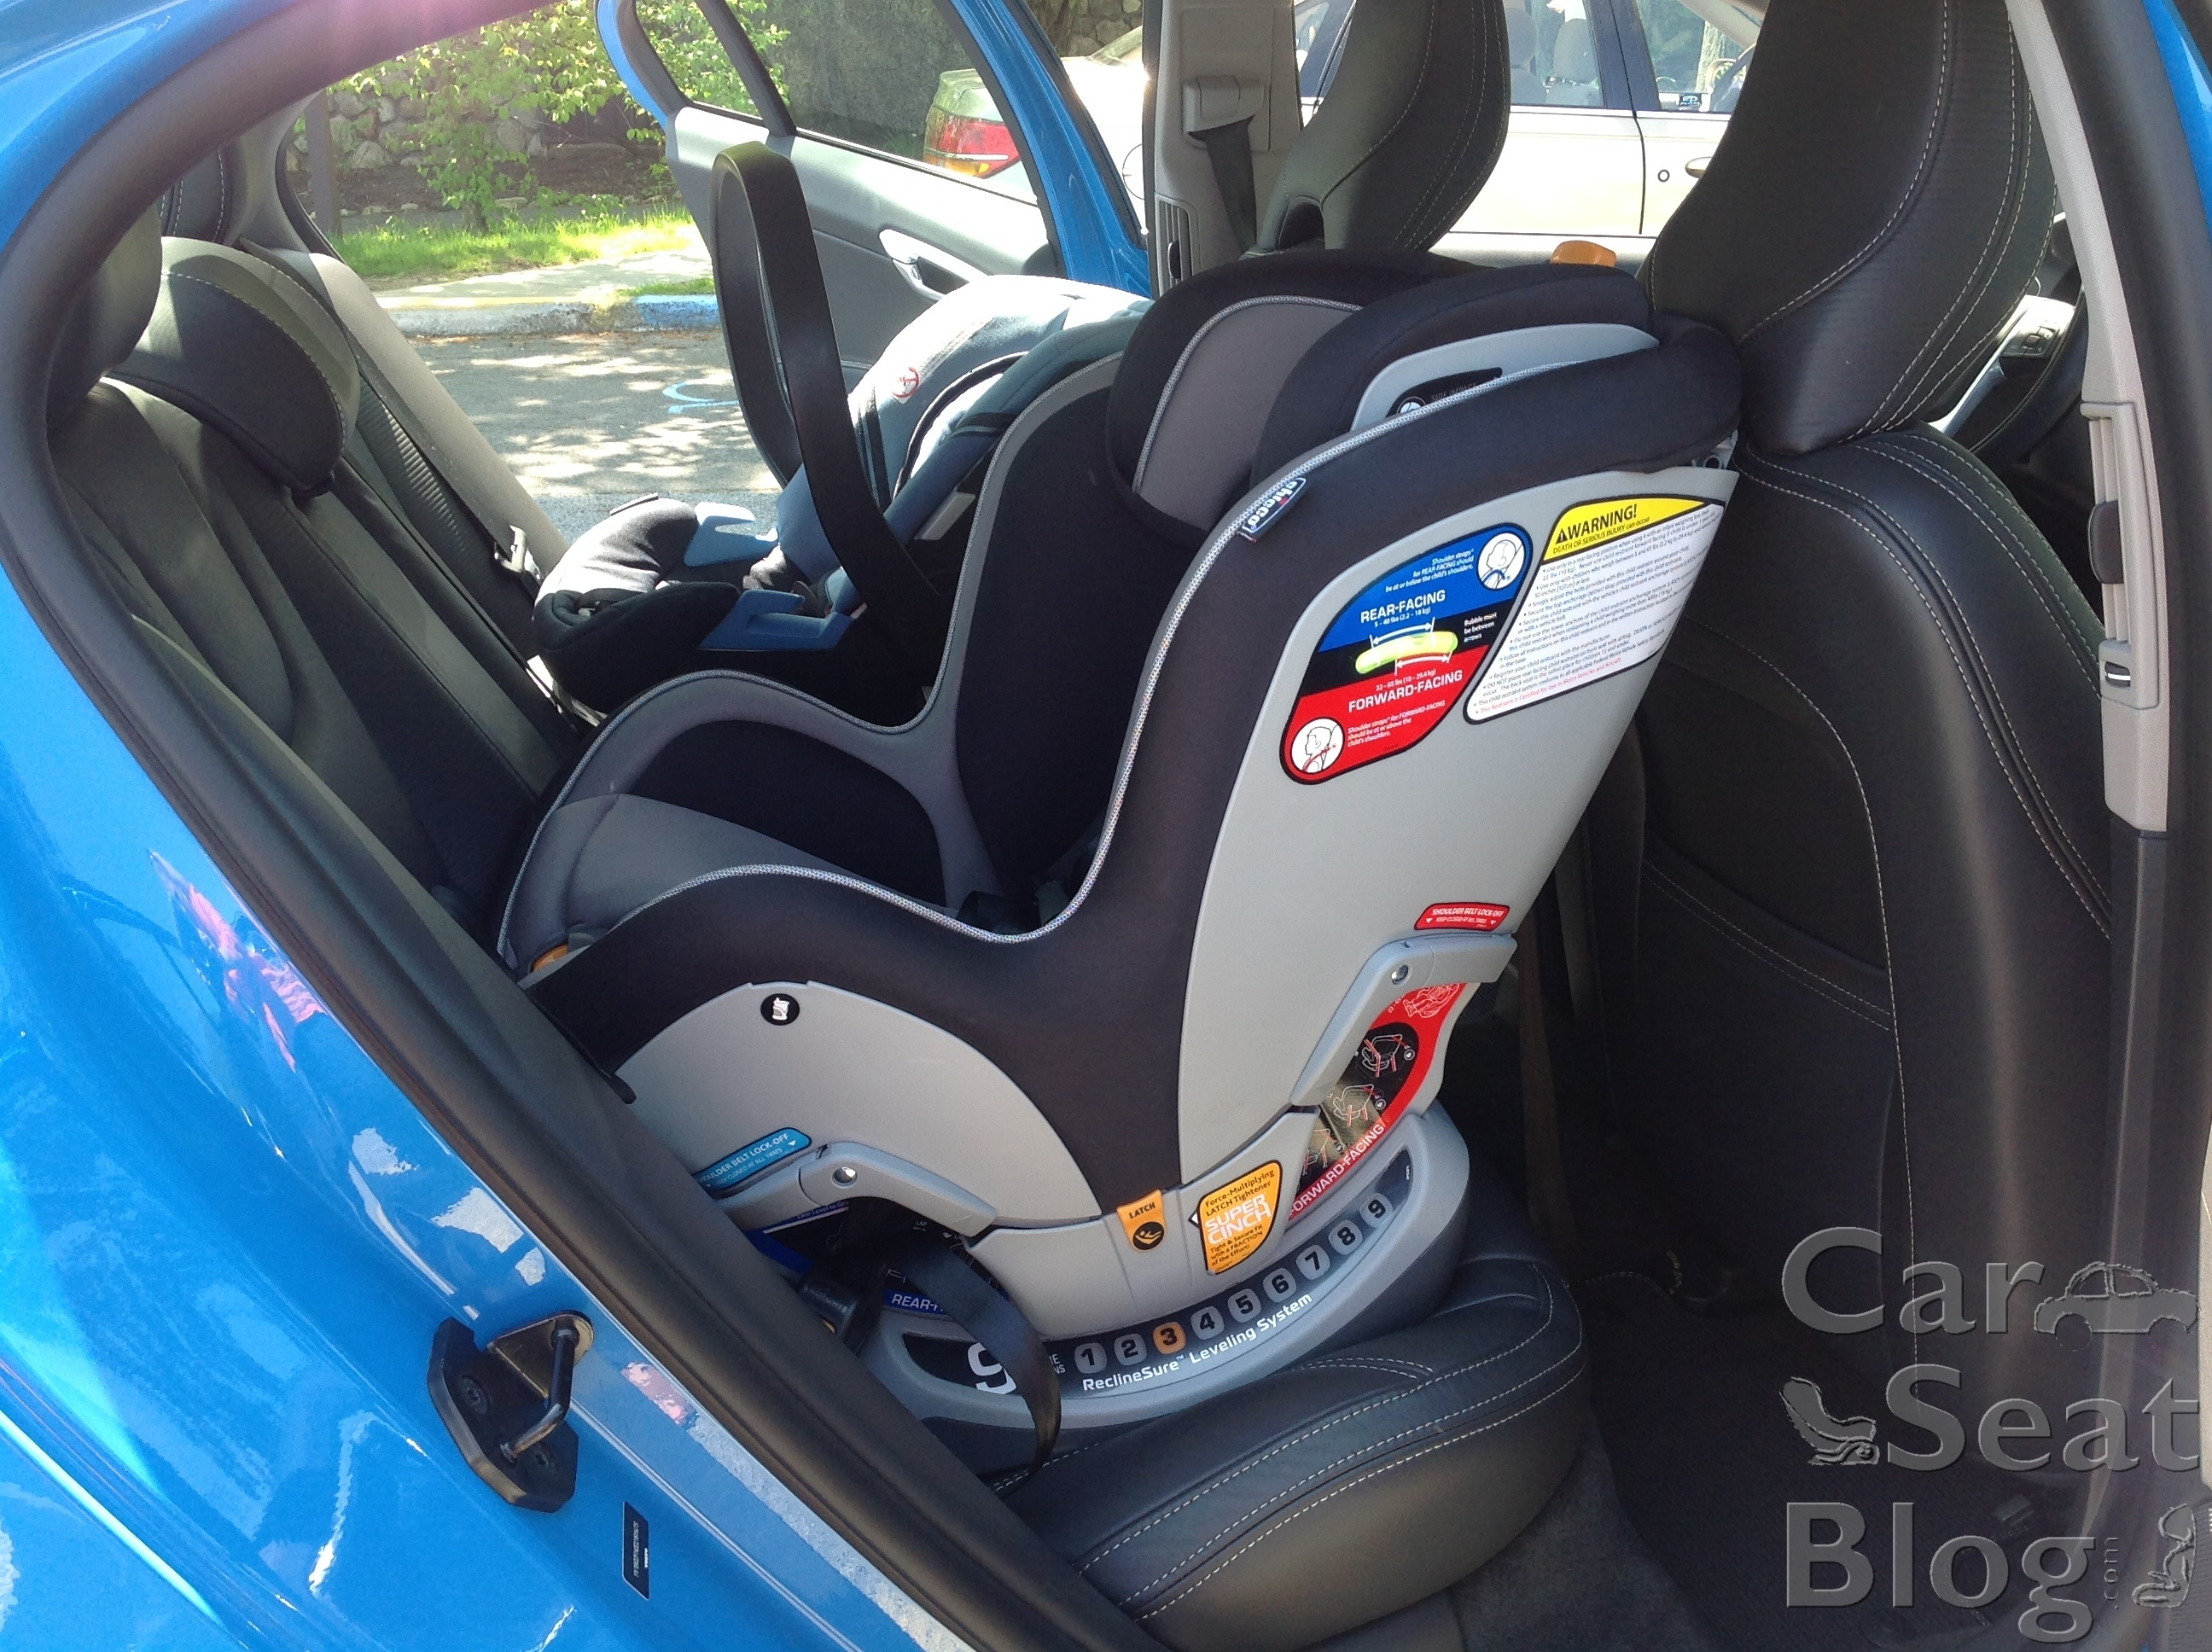 Parts for car seats likewise graco replacement parts for car - So What S The Verdict